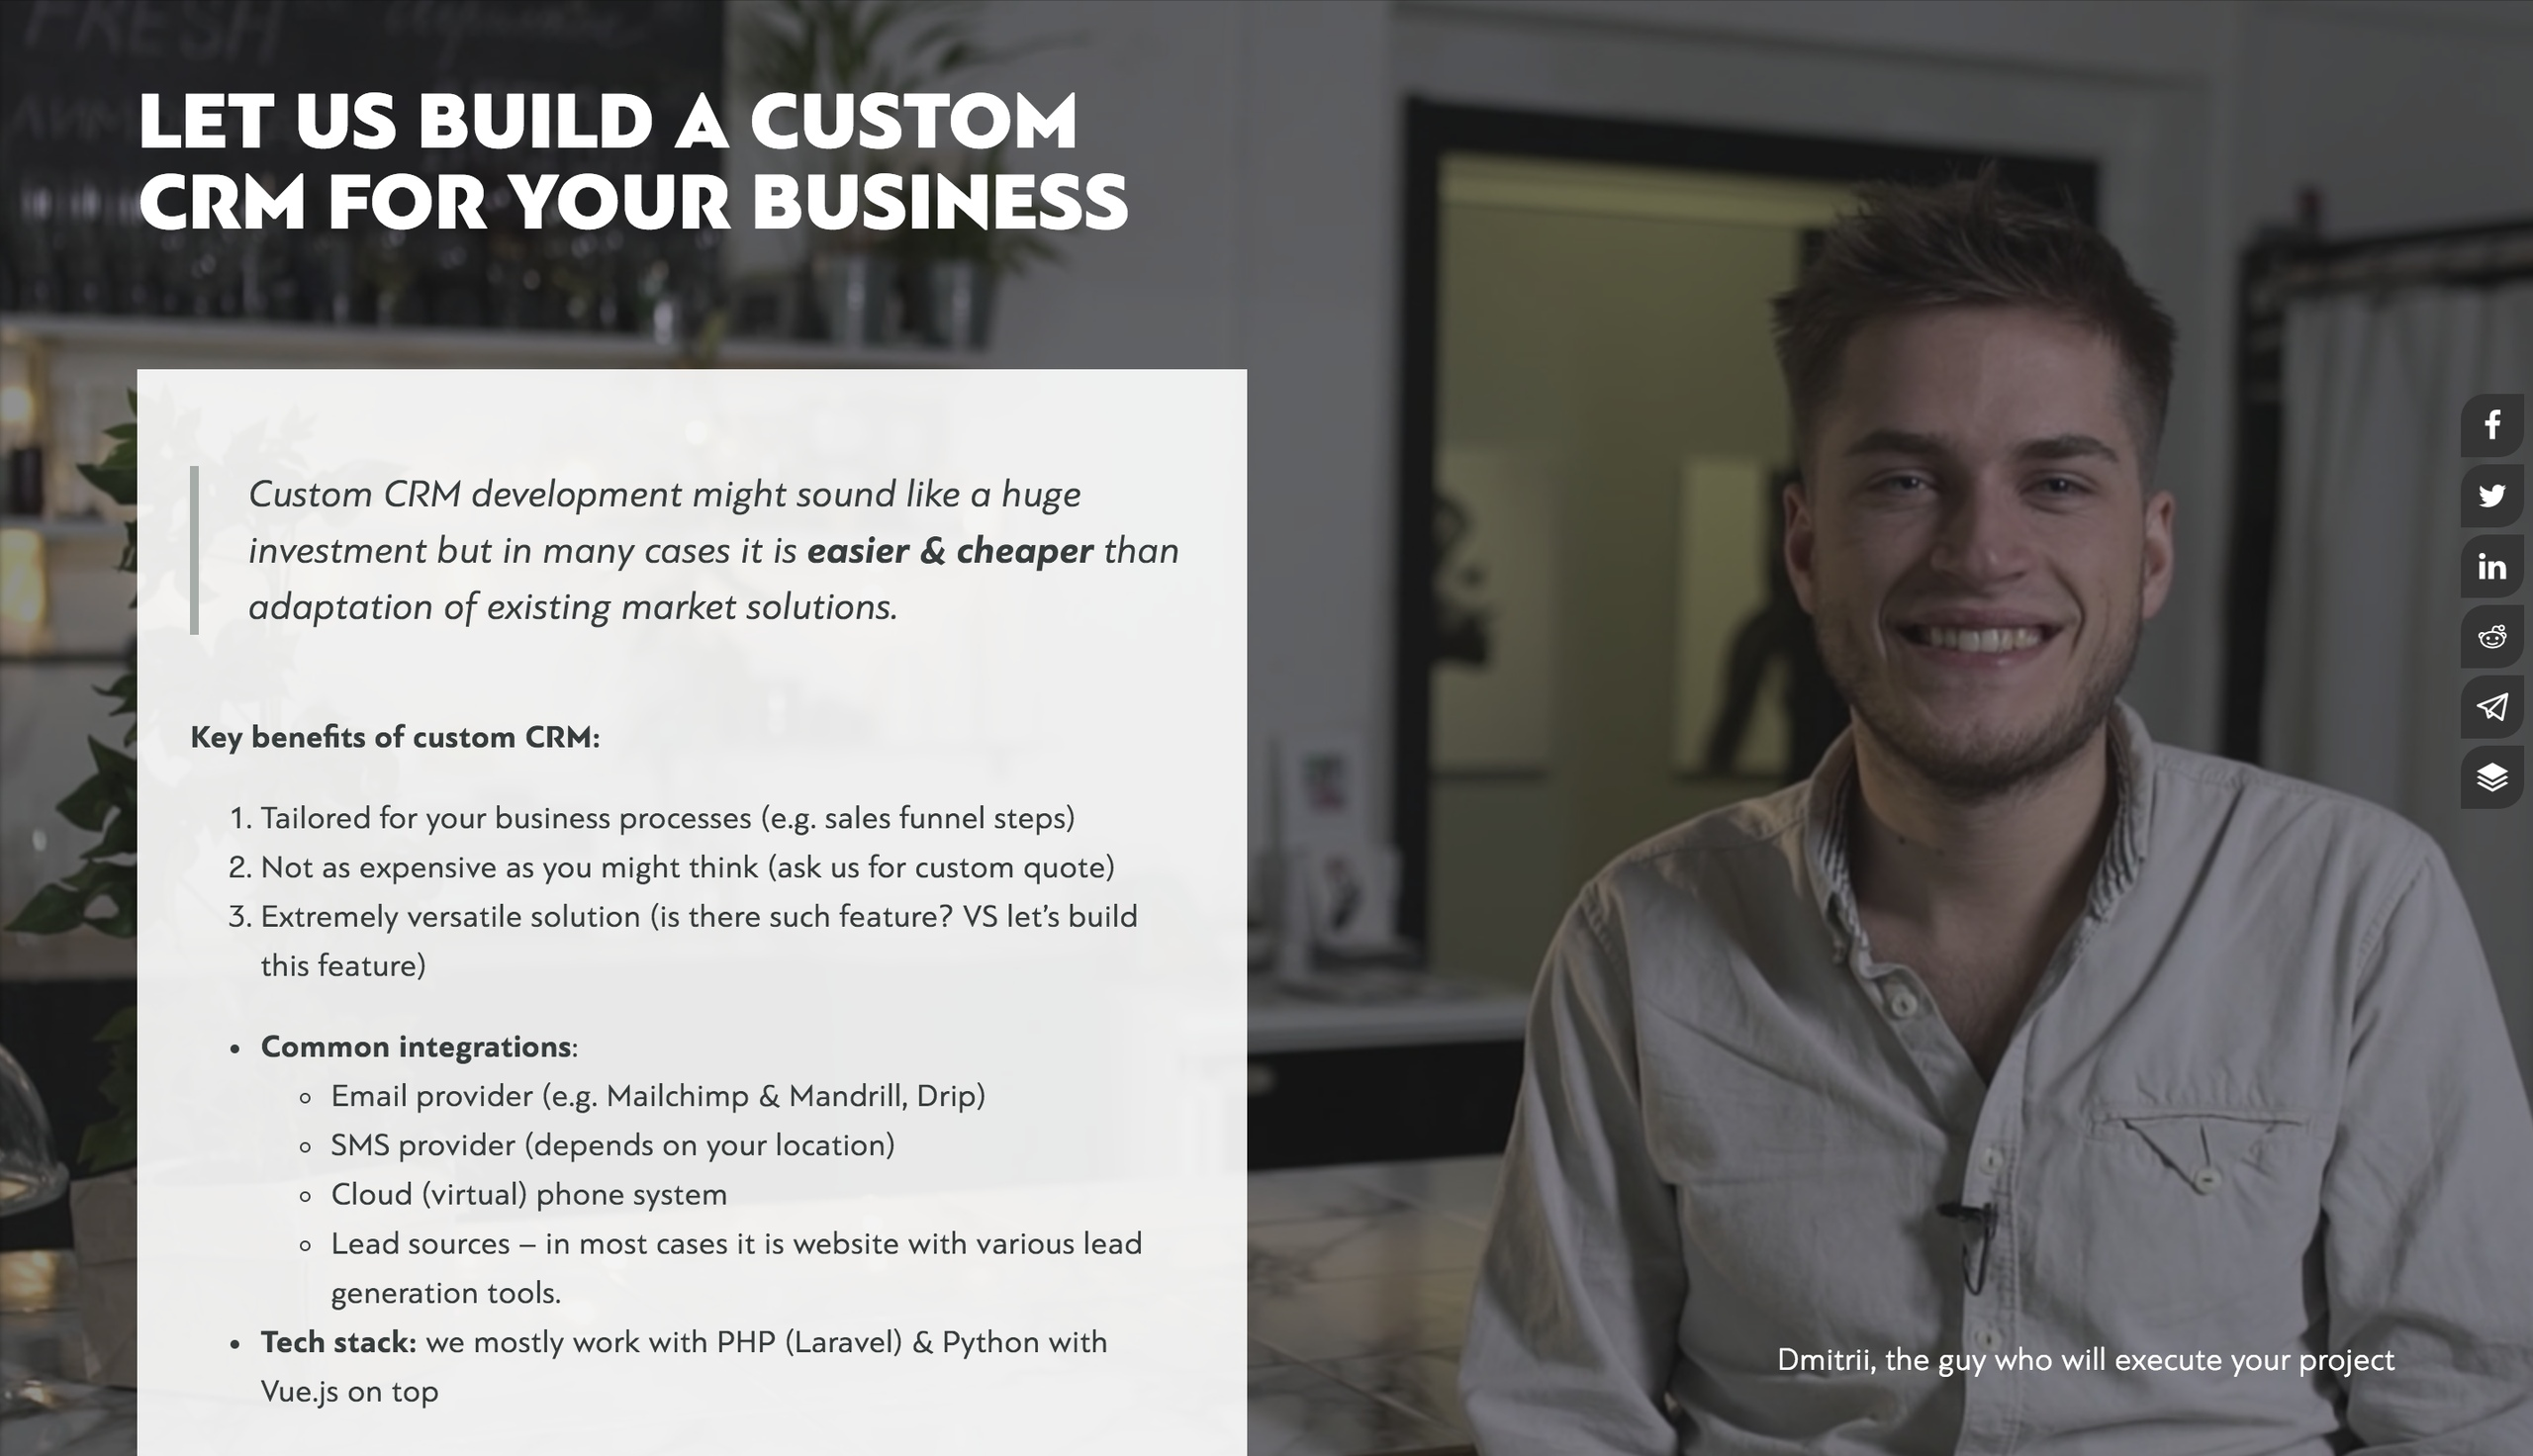 b2b sales consultant naked self promo example